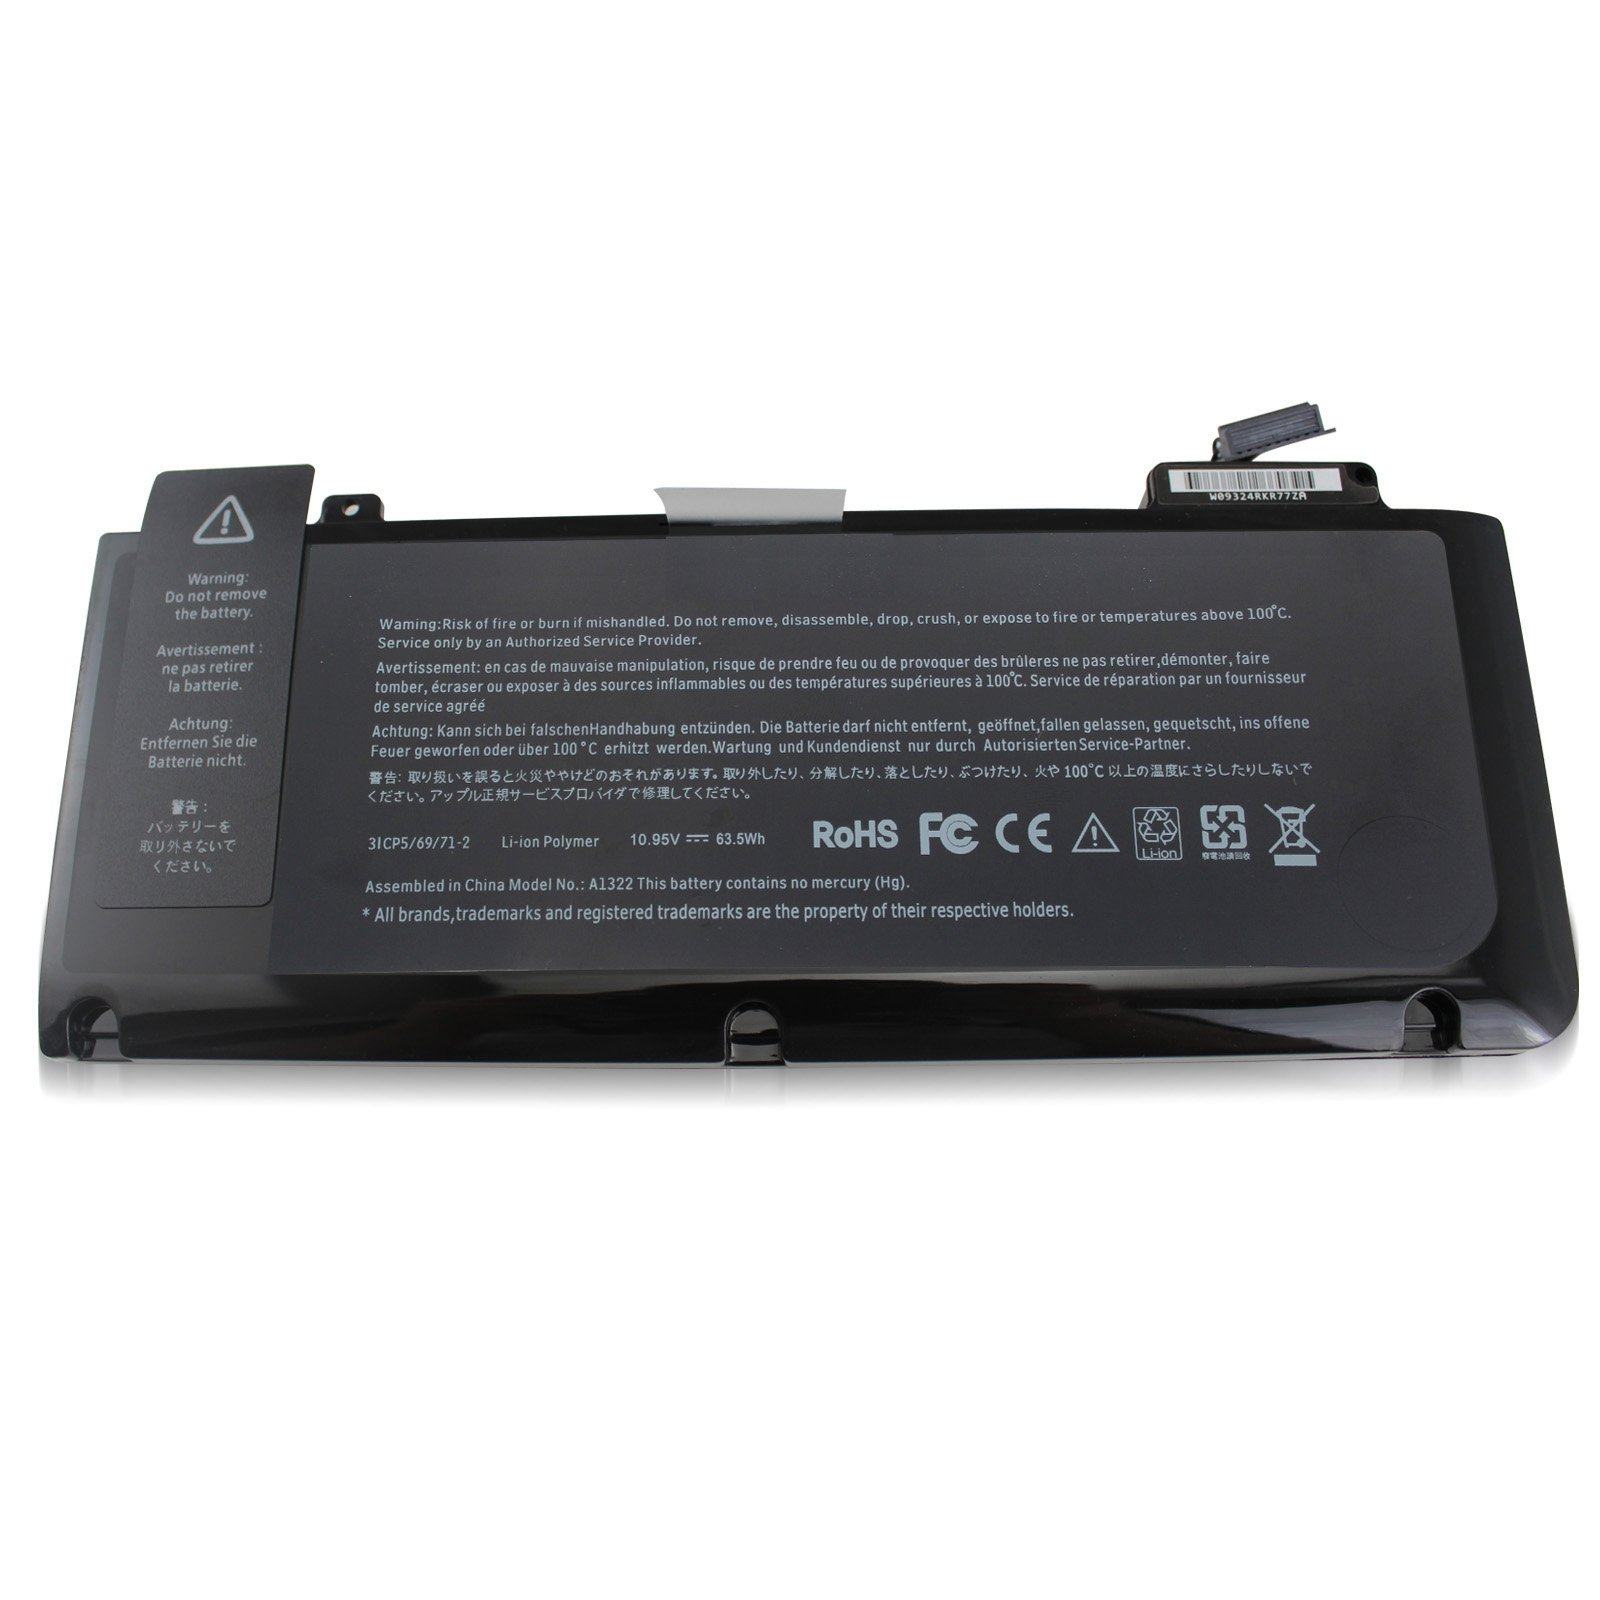 Bateria Para Apple Macbook Pro 13 Inch A1278 A1322  [angwel]